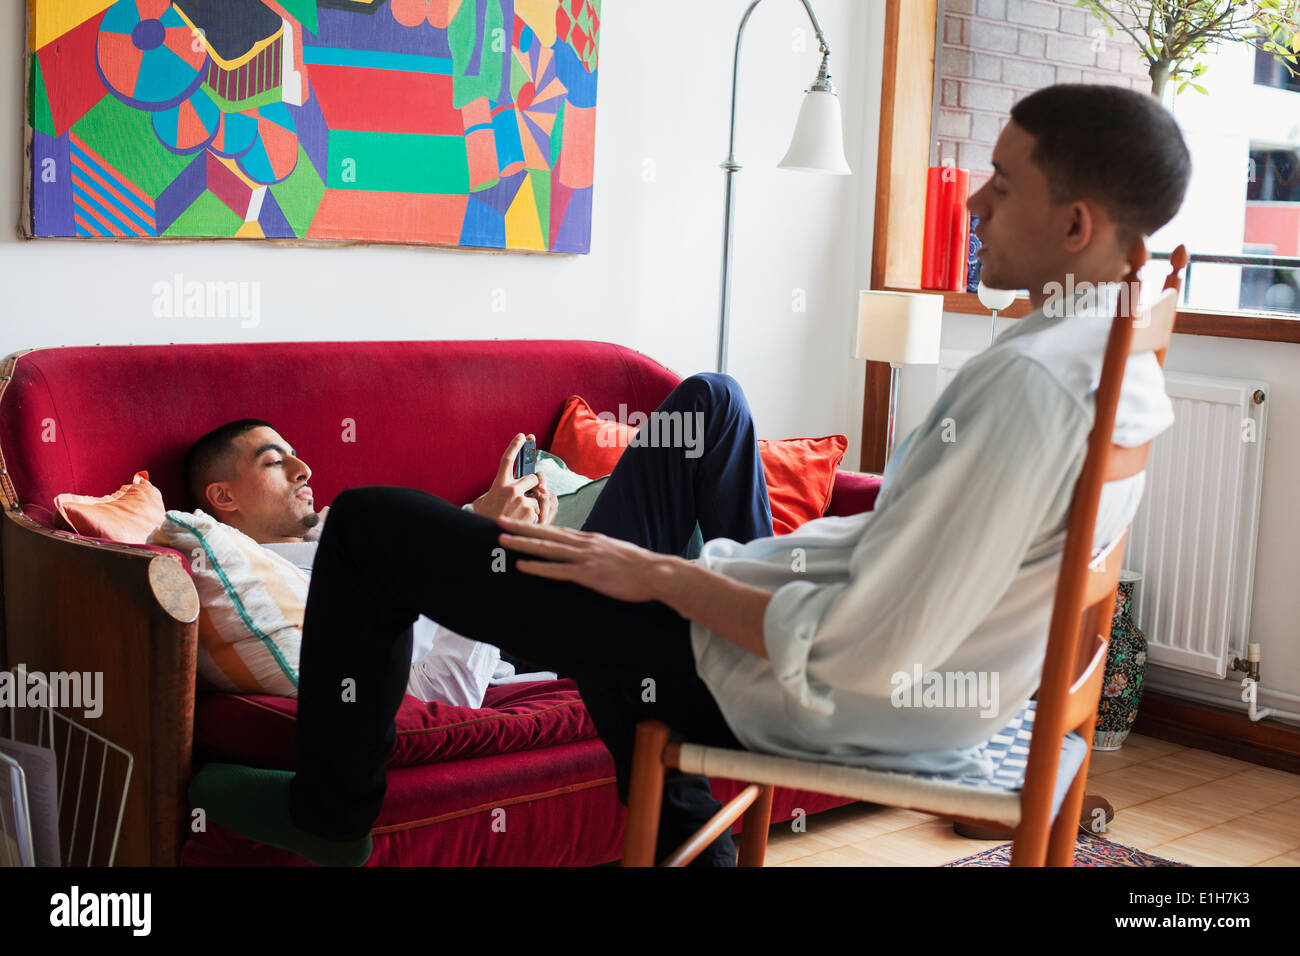 Young men relaxing in living room - Stock Image